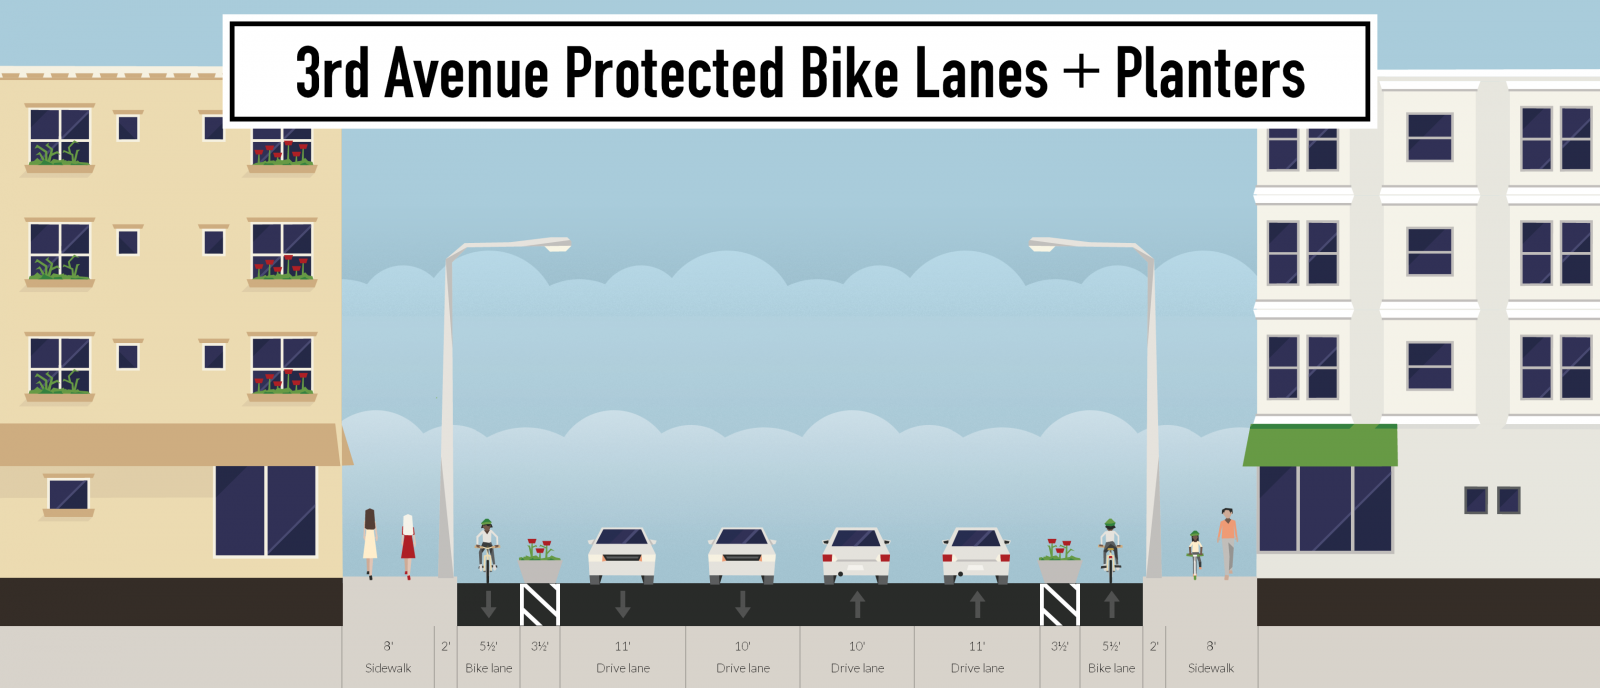 3rd-avenue-protected-bike-lanes--planters_Streetmix.png